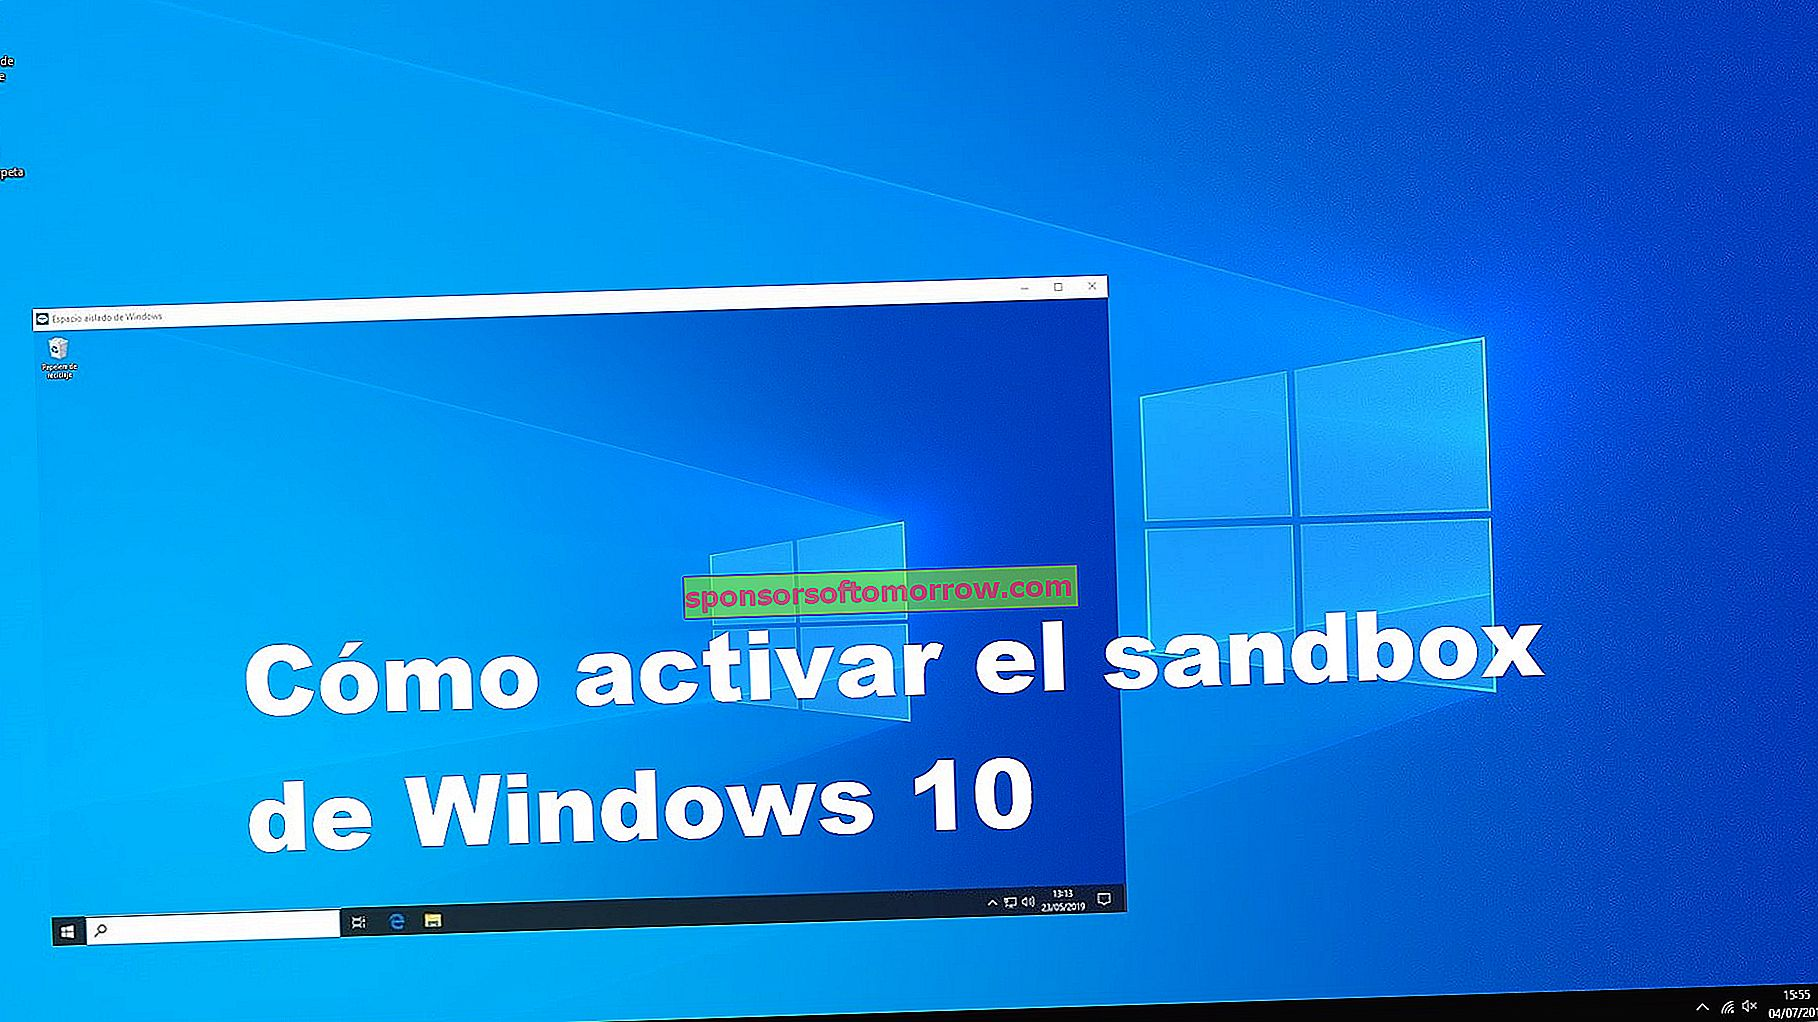 How to activate the Windows 10 sandbox to test applications safely